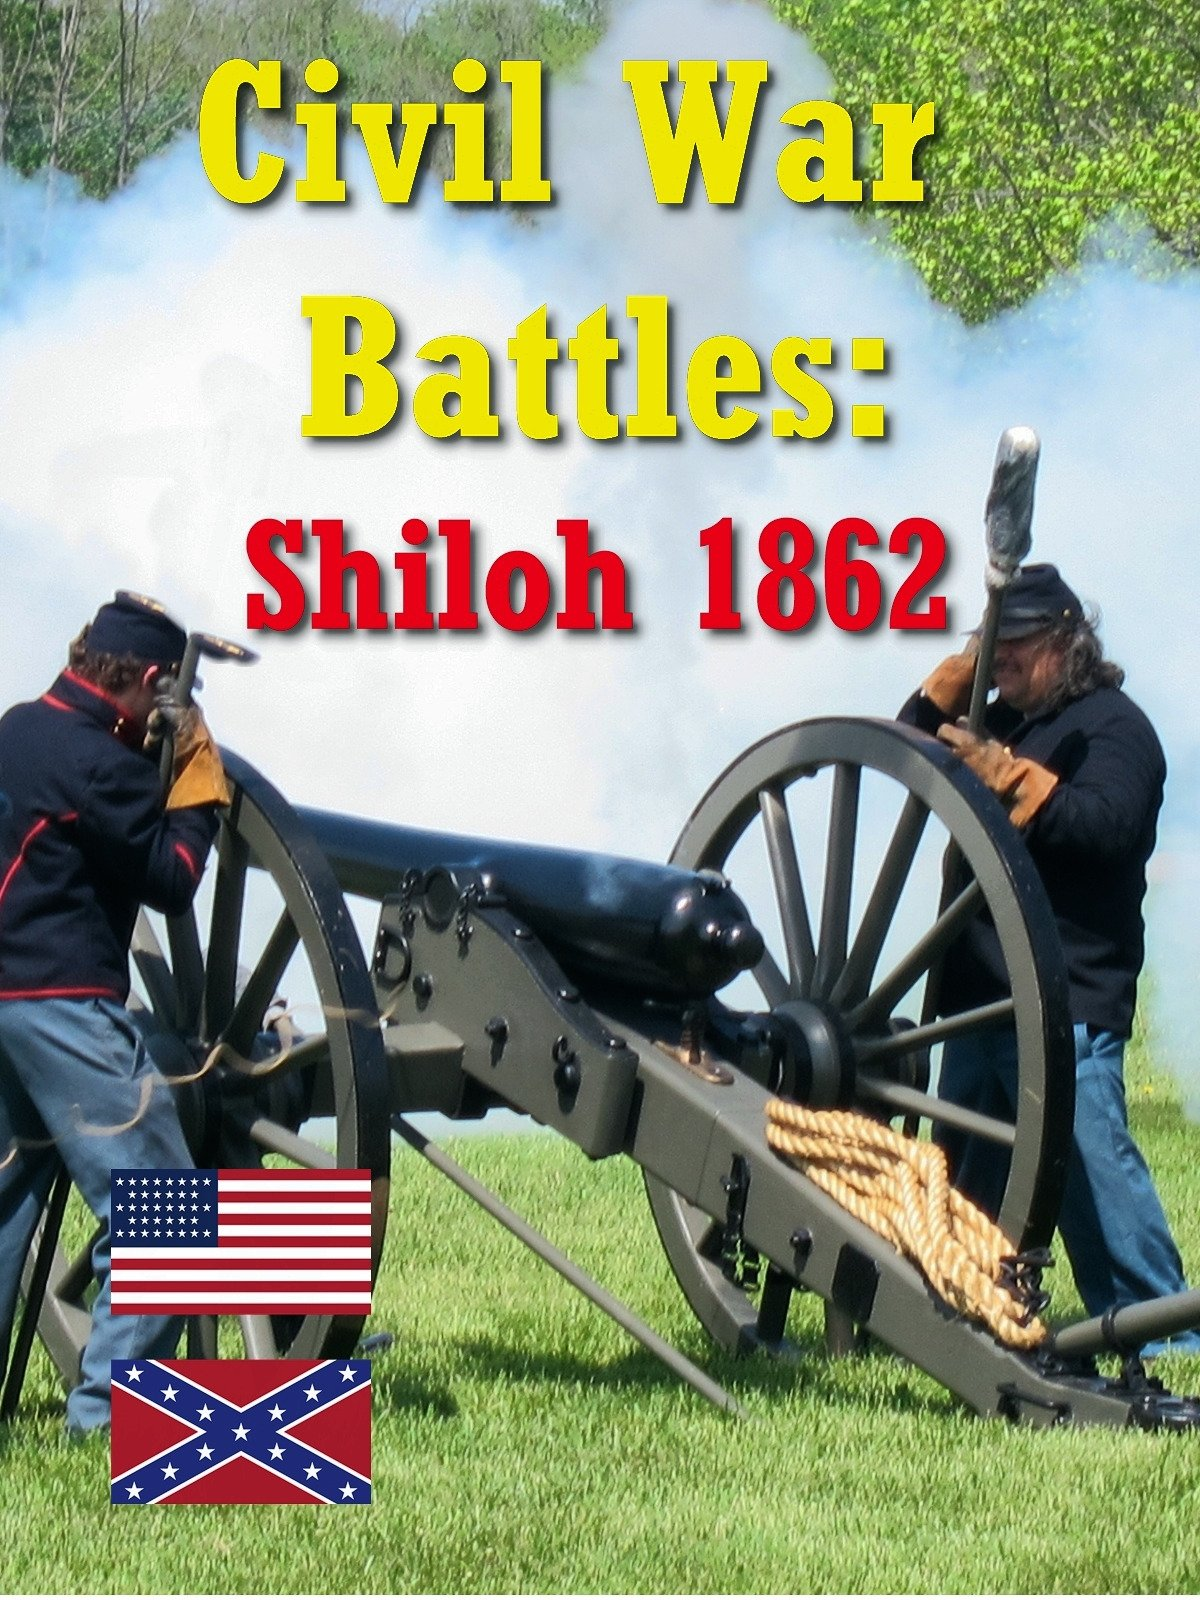 Civil War Battles: Shiloh 1862